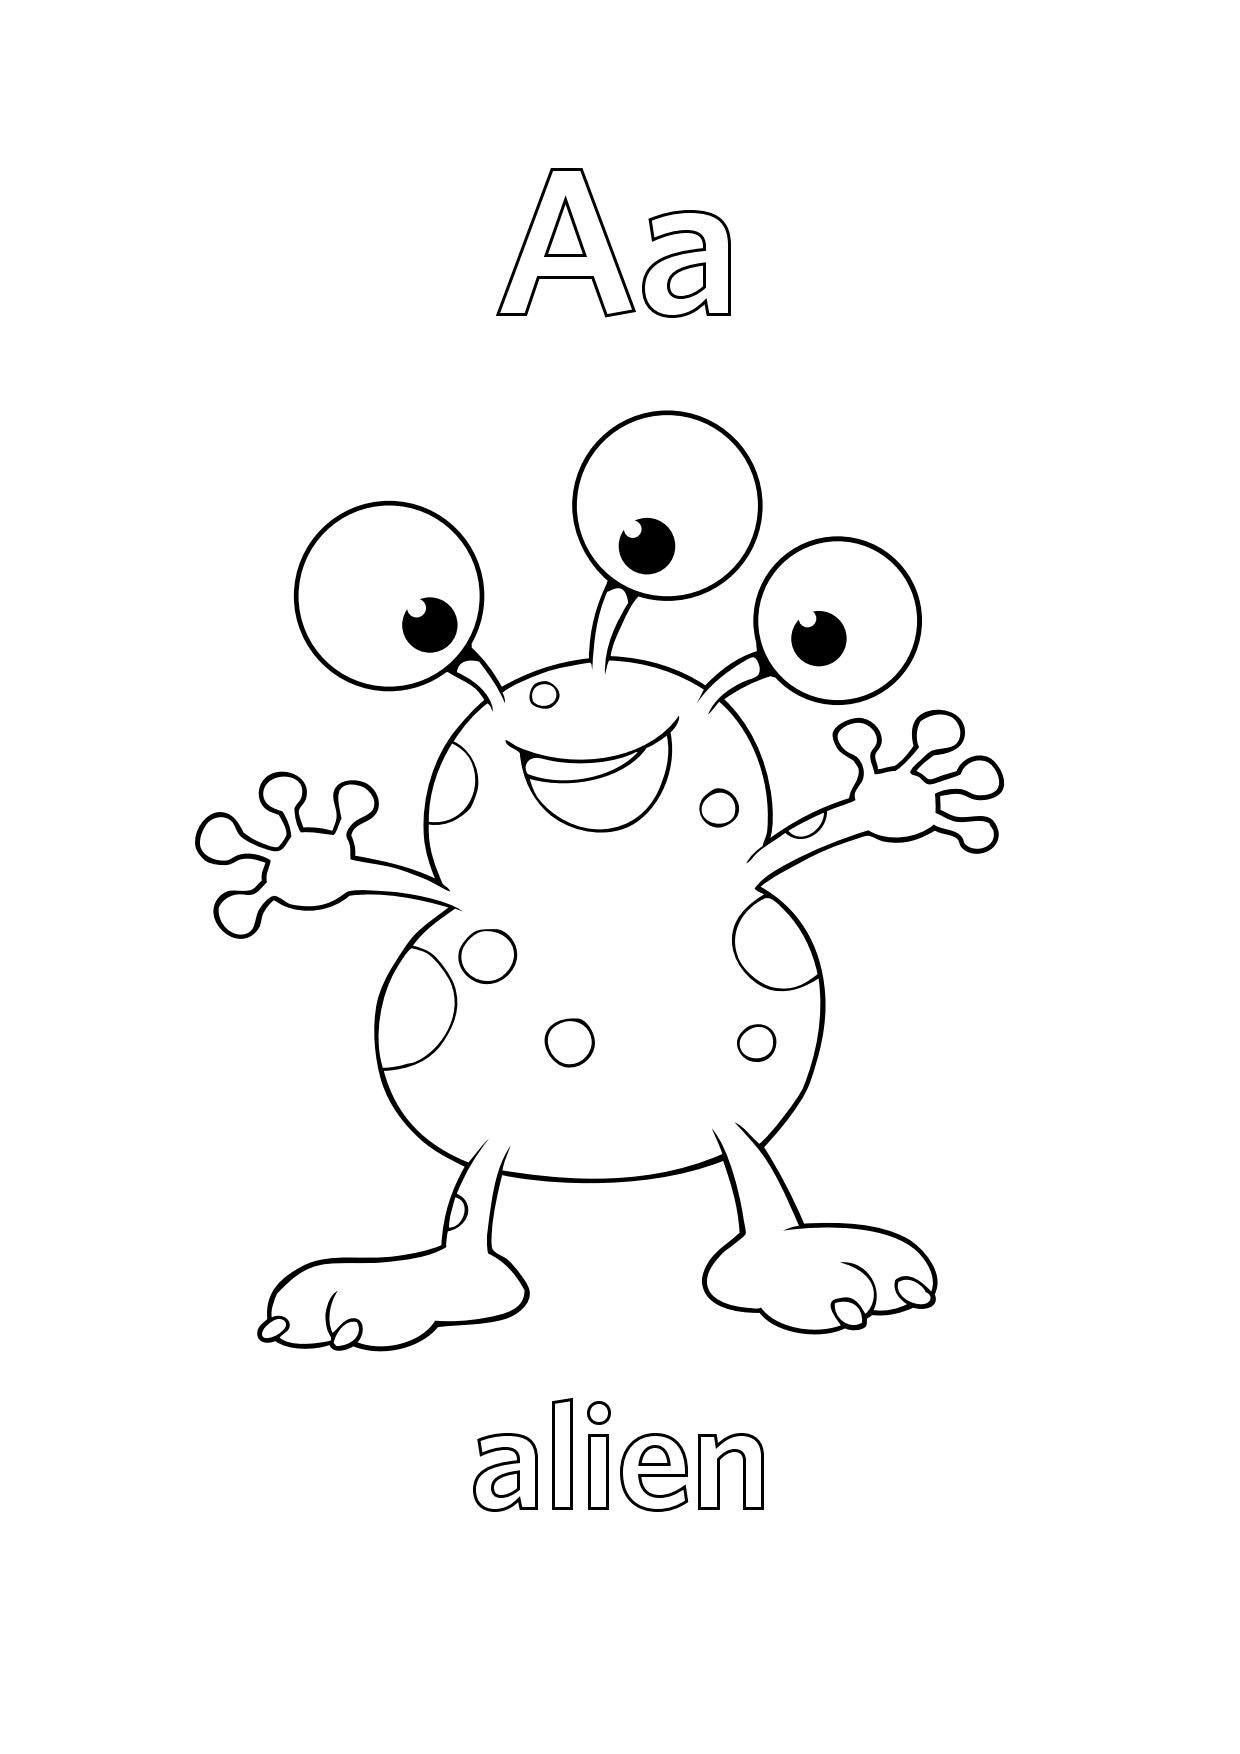 5 Letter P Coloring Worksheet Printable Coloring Pages